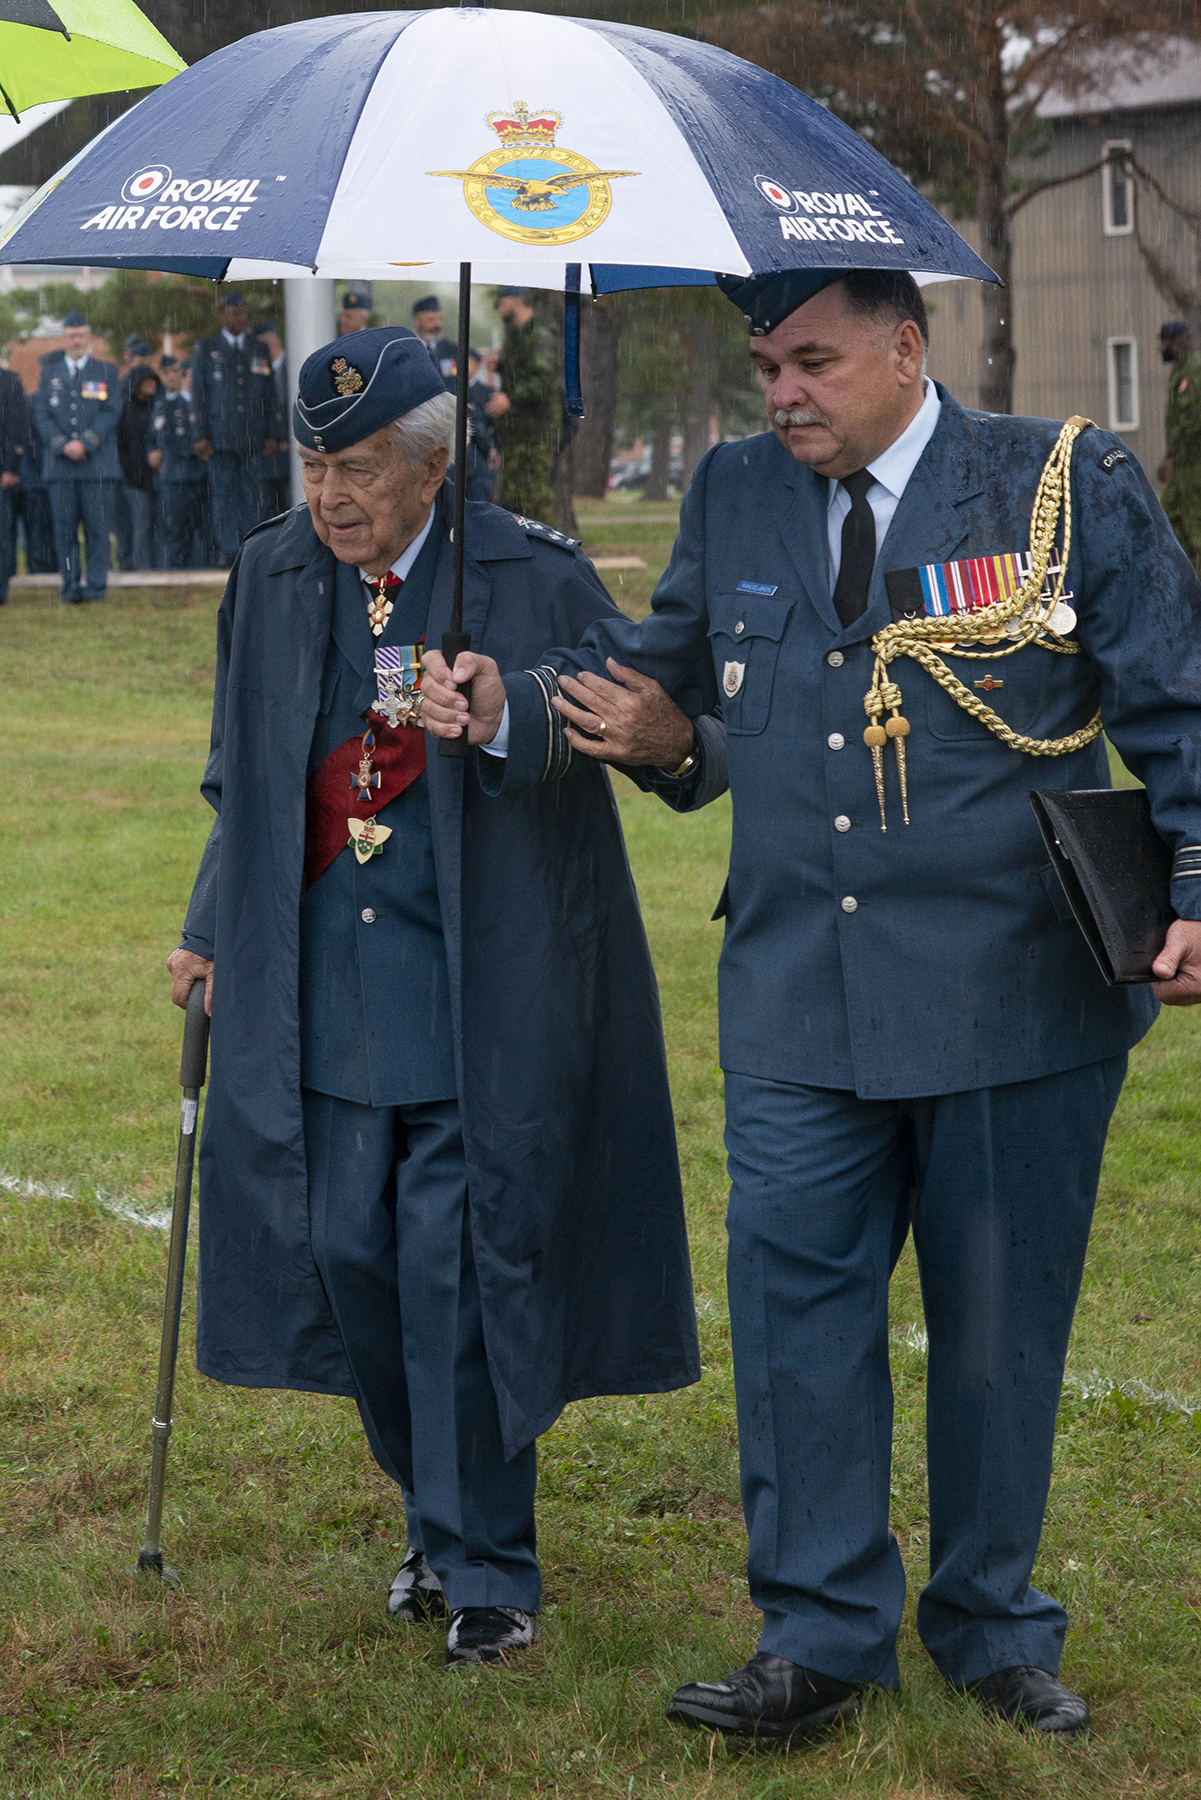 Honorary Lieutenant-General Major-General Retired Richard Rohmer (left) arrives with Major Richard Rangel-Bron at the 2019 Battle of Britain Parade at 16 Wing/Canadian Forces Base Borden, Ontario, on September 15, 2019. PHOTO: Corporal Lynette Ai Dang, BM10-2019-0306-004